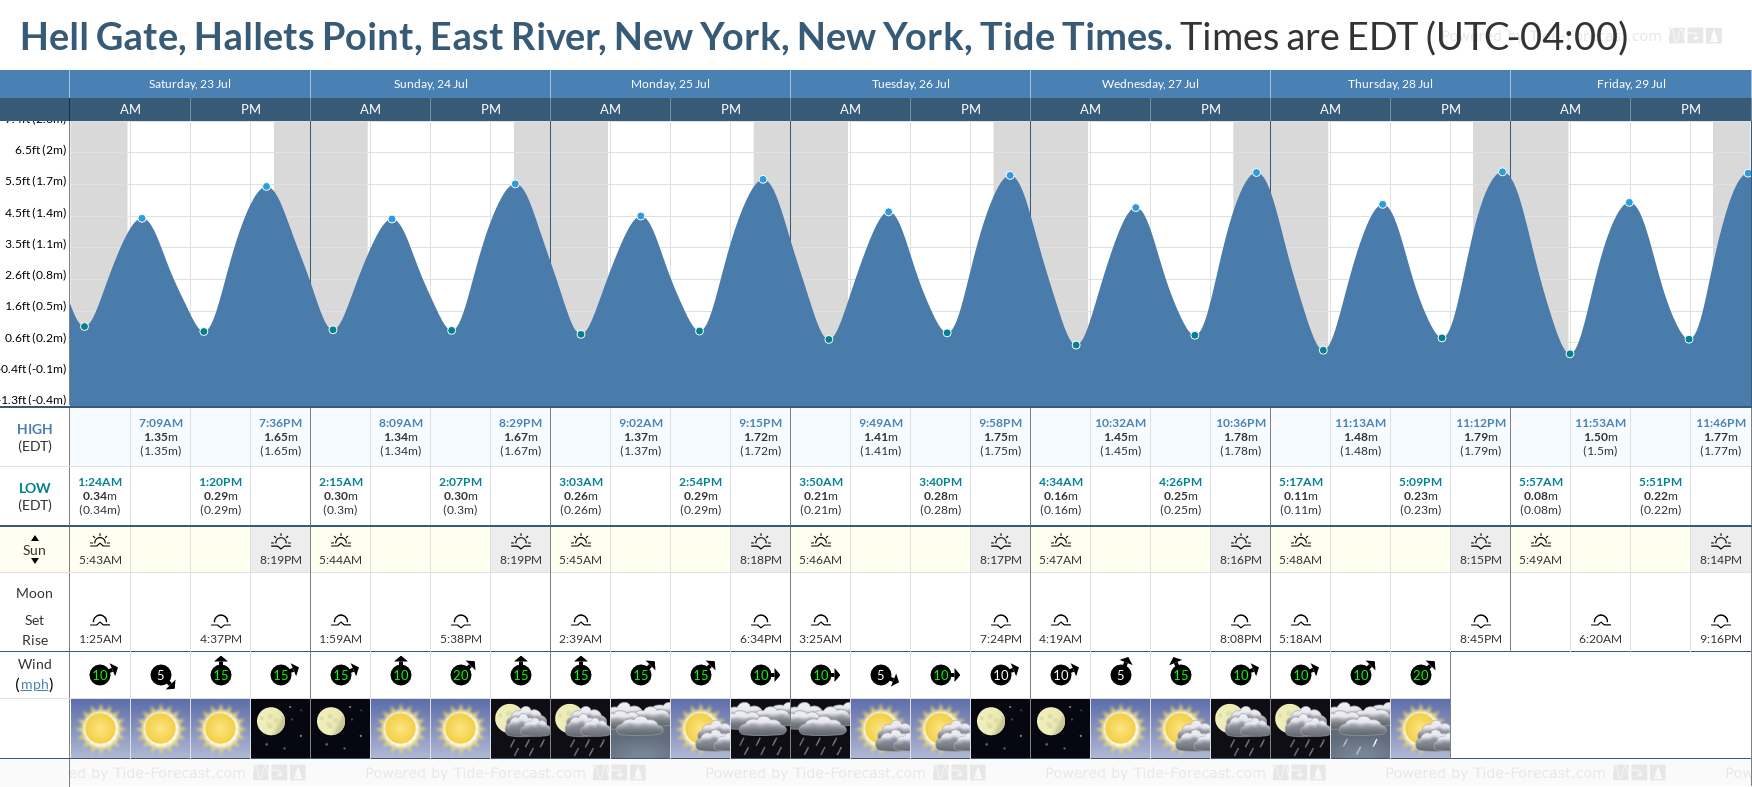 Hell Gate, Hallets Point, East River, New York, New York Tide Chart including high and low tide tide times for the next 7 days